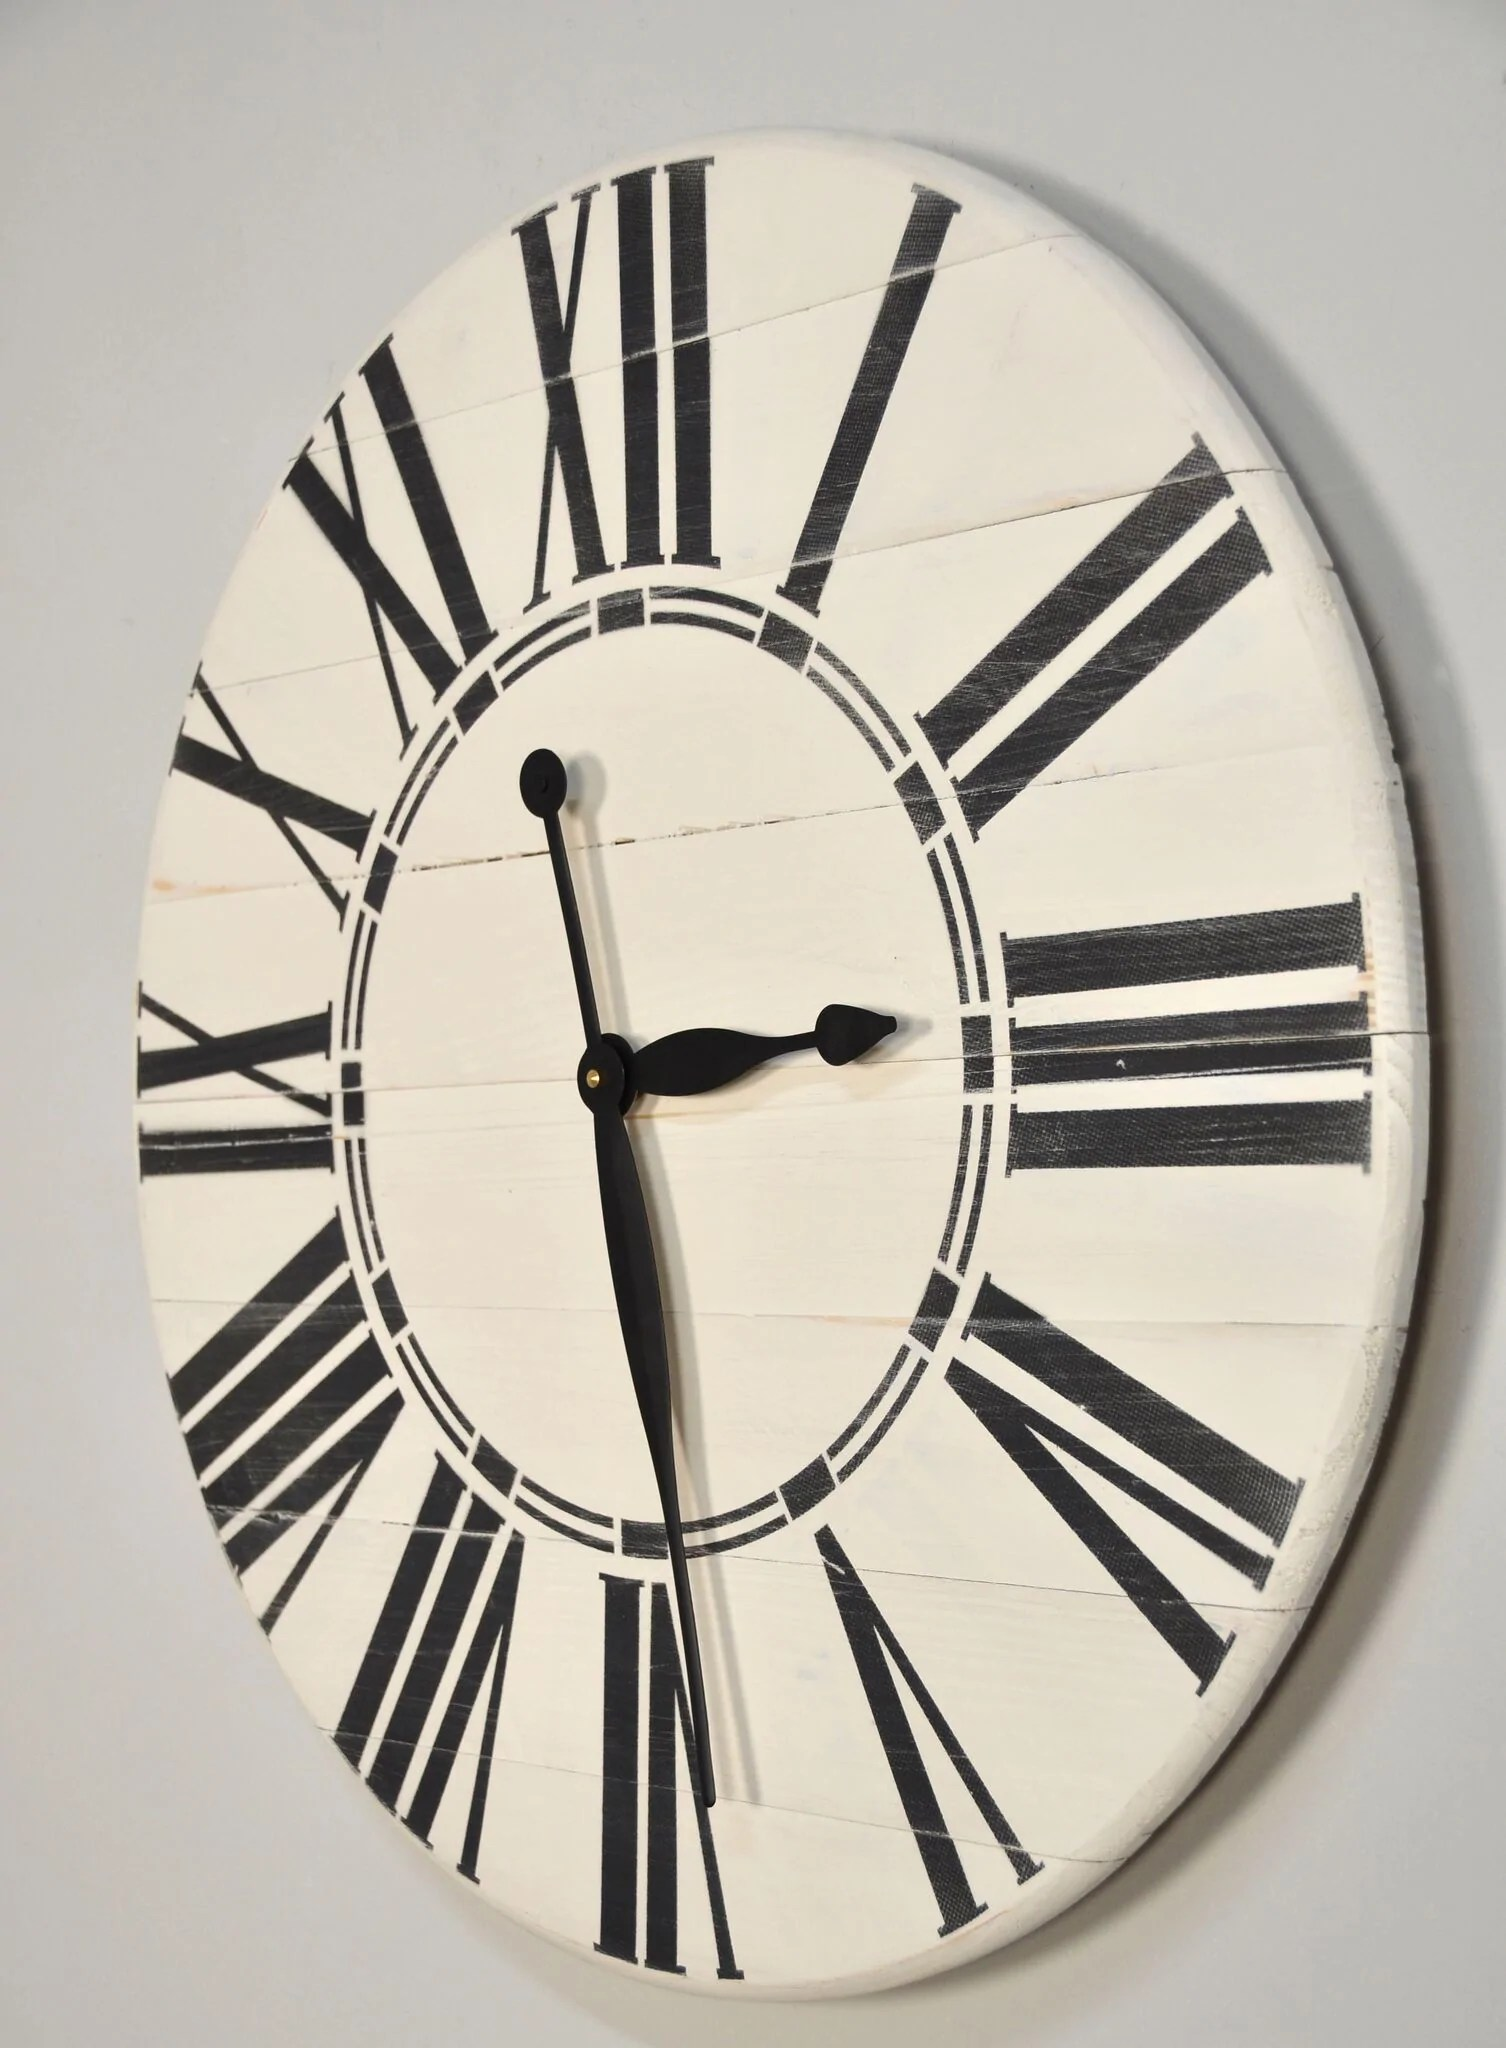 & Wall Clock White Rustic Wall Clock With Black Roman Numerals